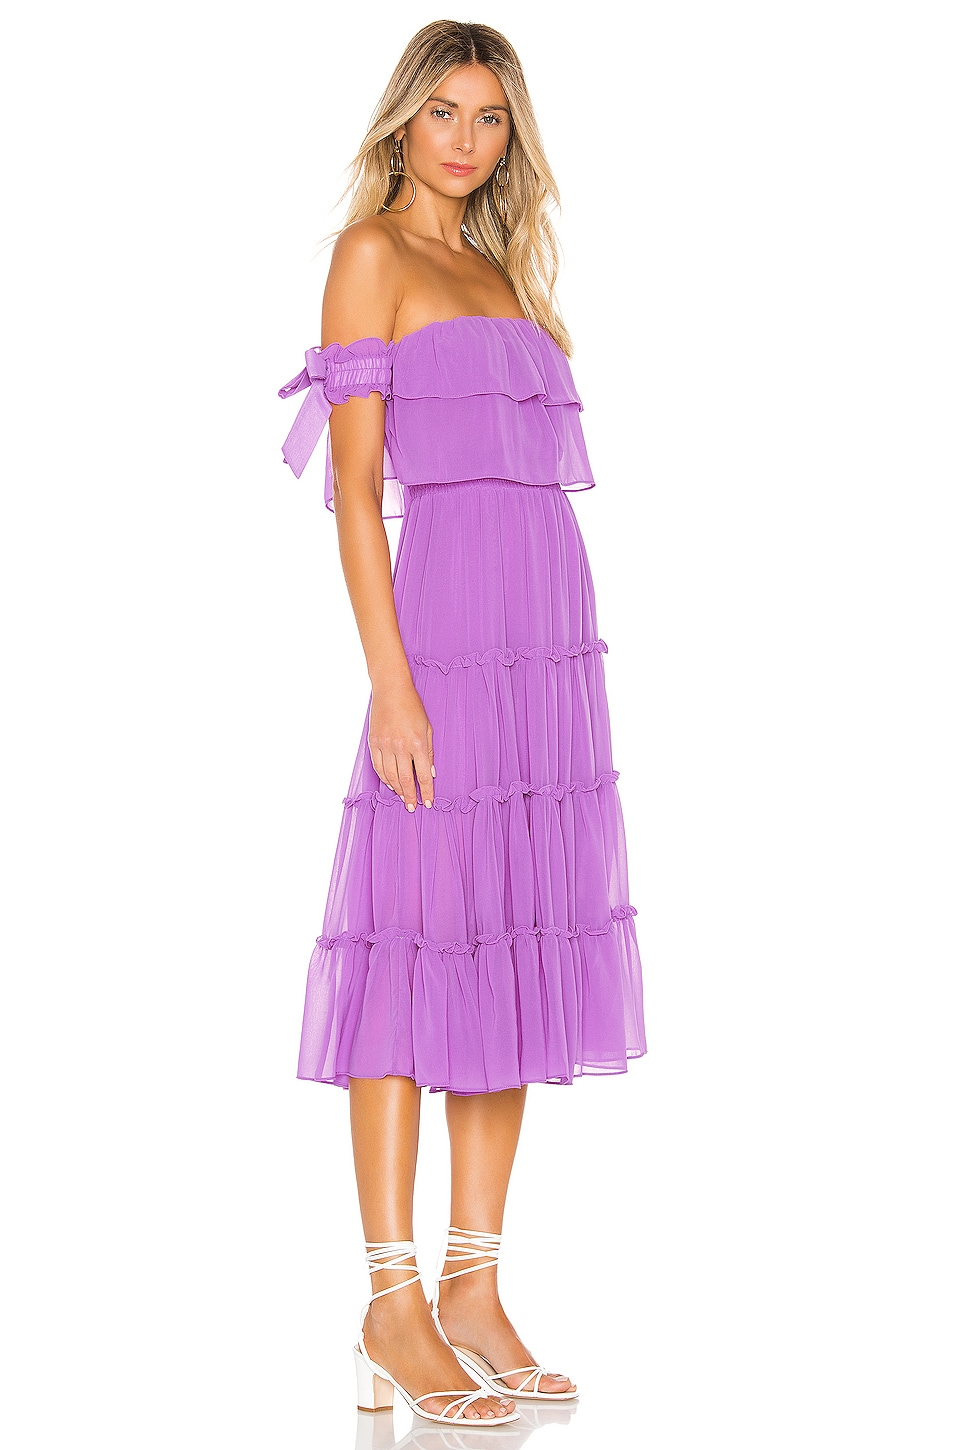 X REVOLVE Micaela Dress, view 2, click to view large image.